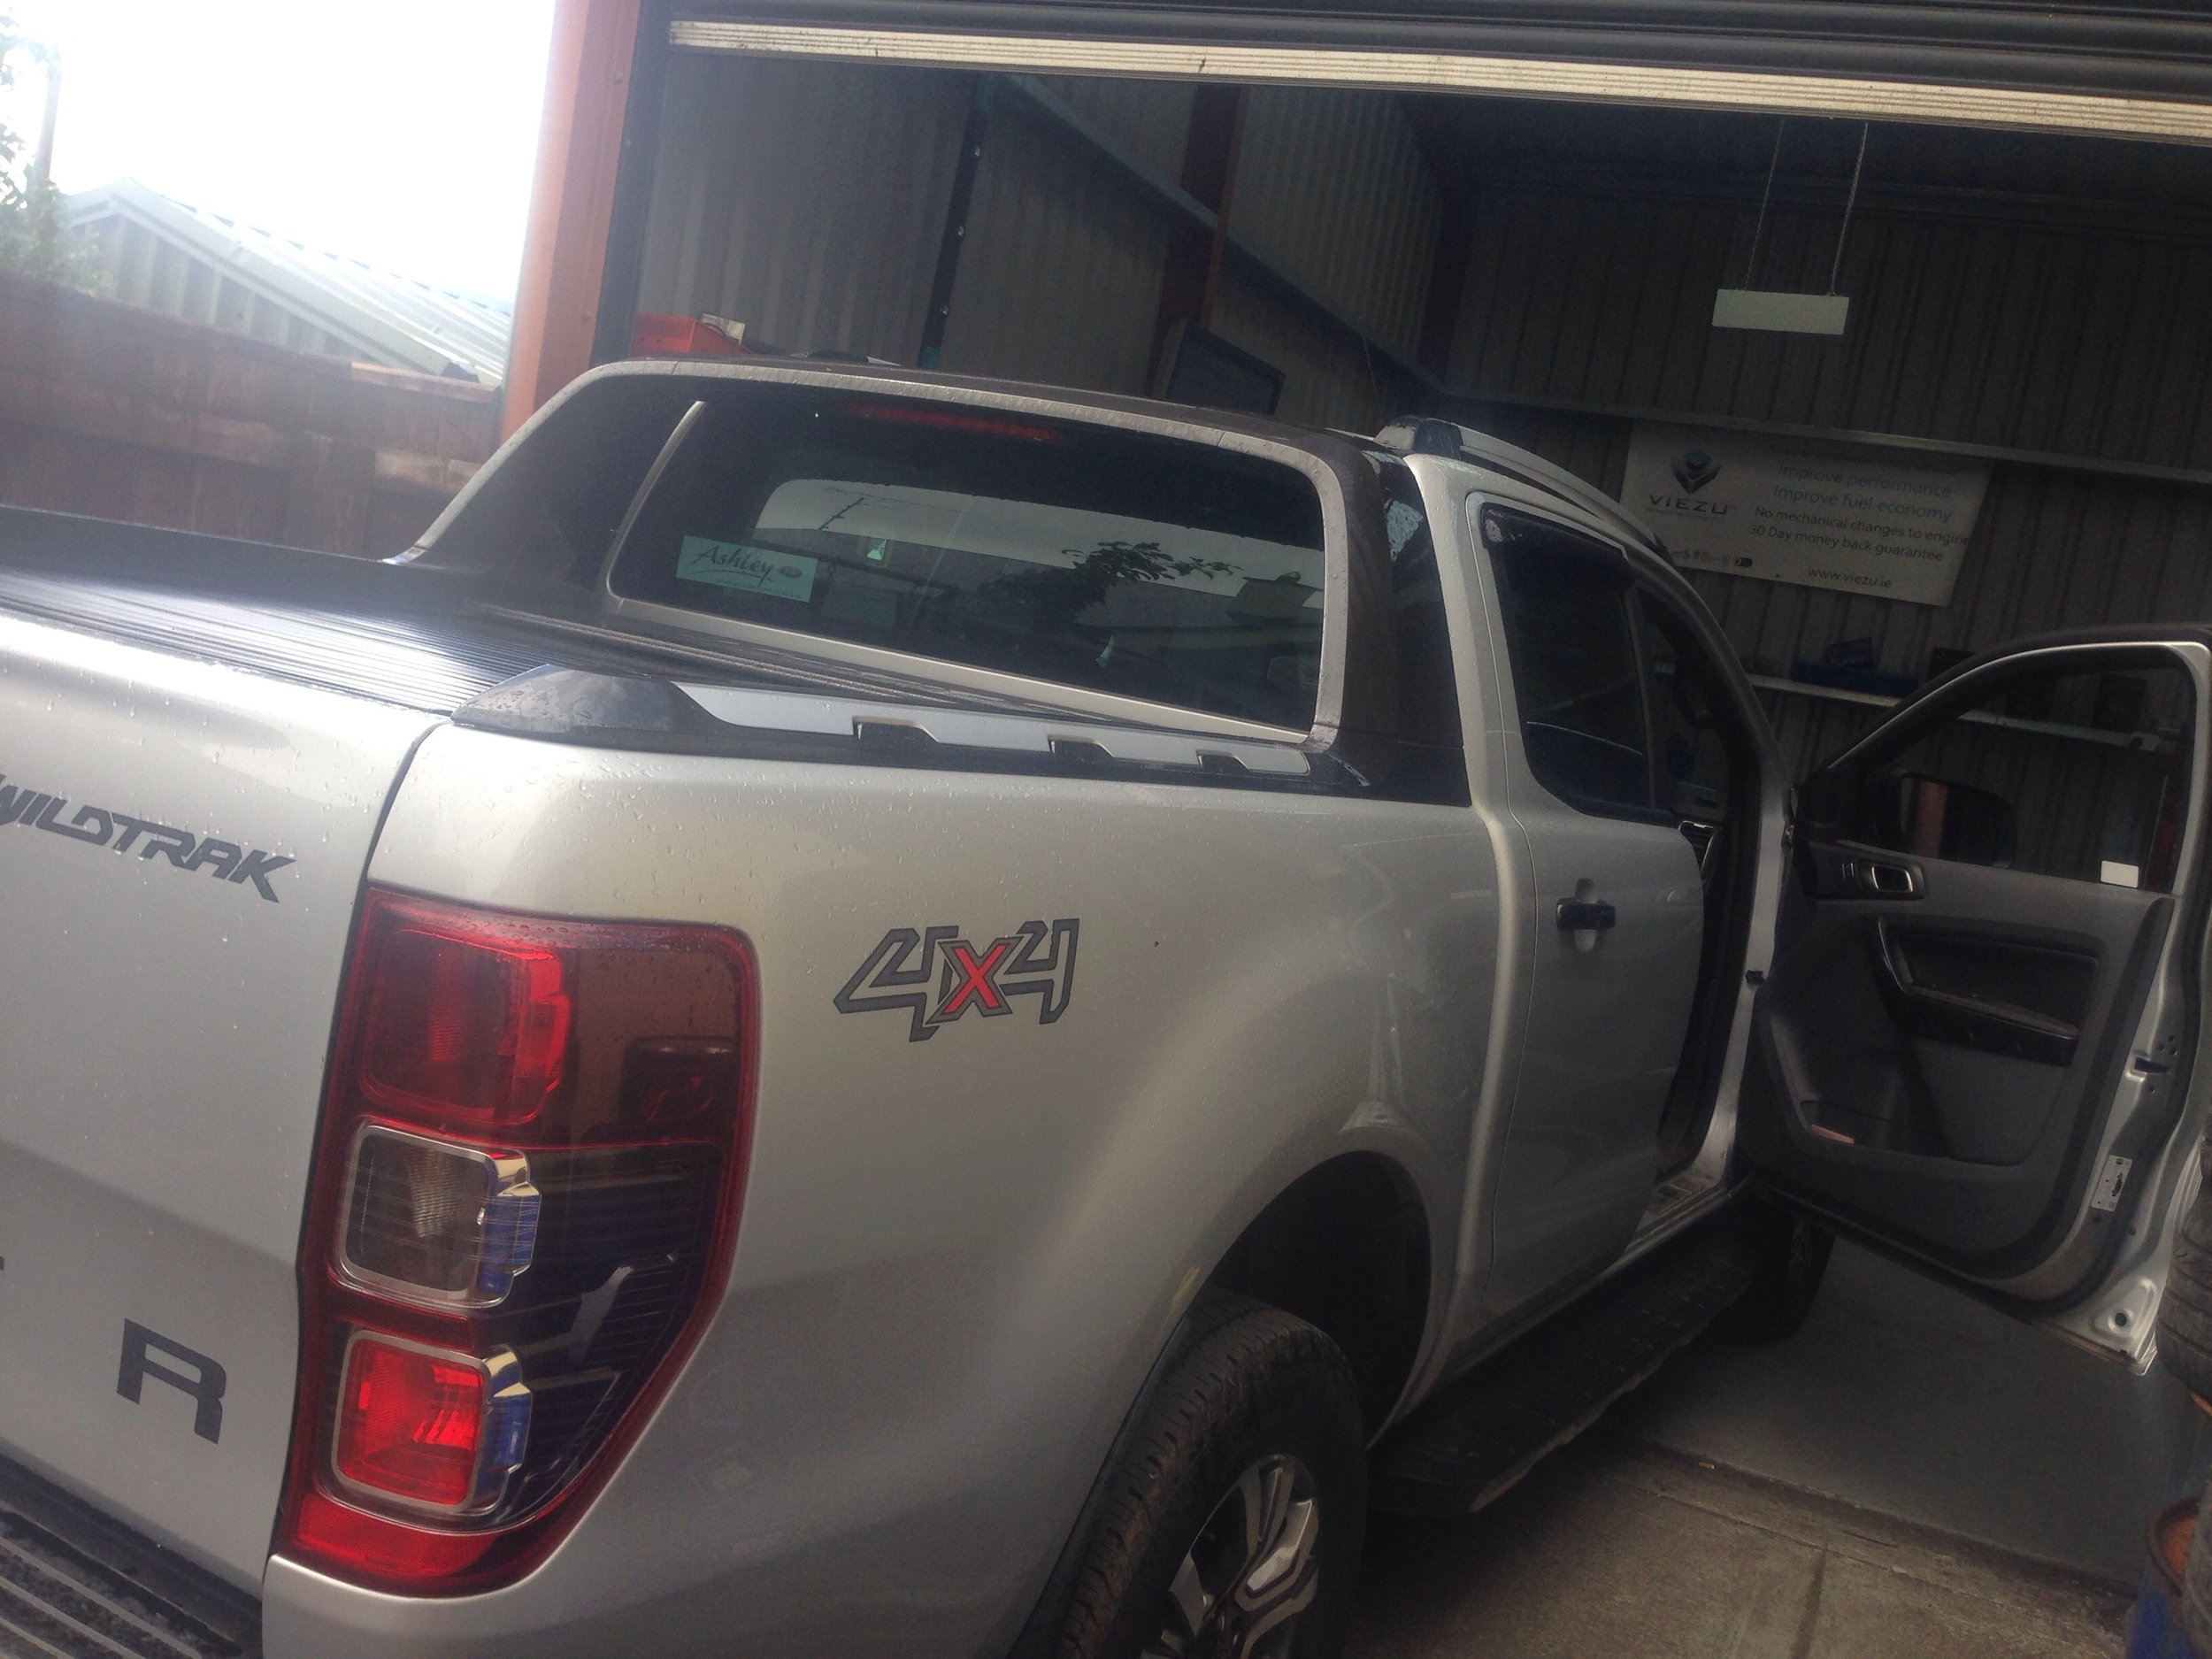 FORD RANGER ECU REMAP IRELAND TUNING VIEZU.jpg